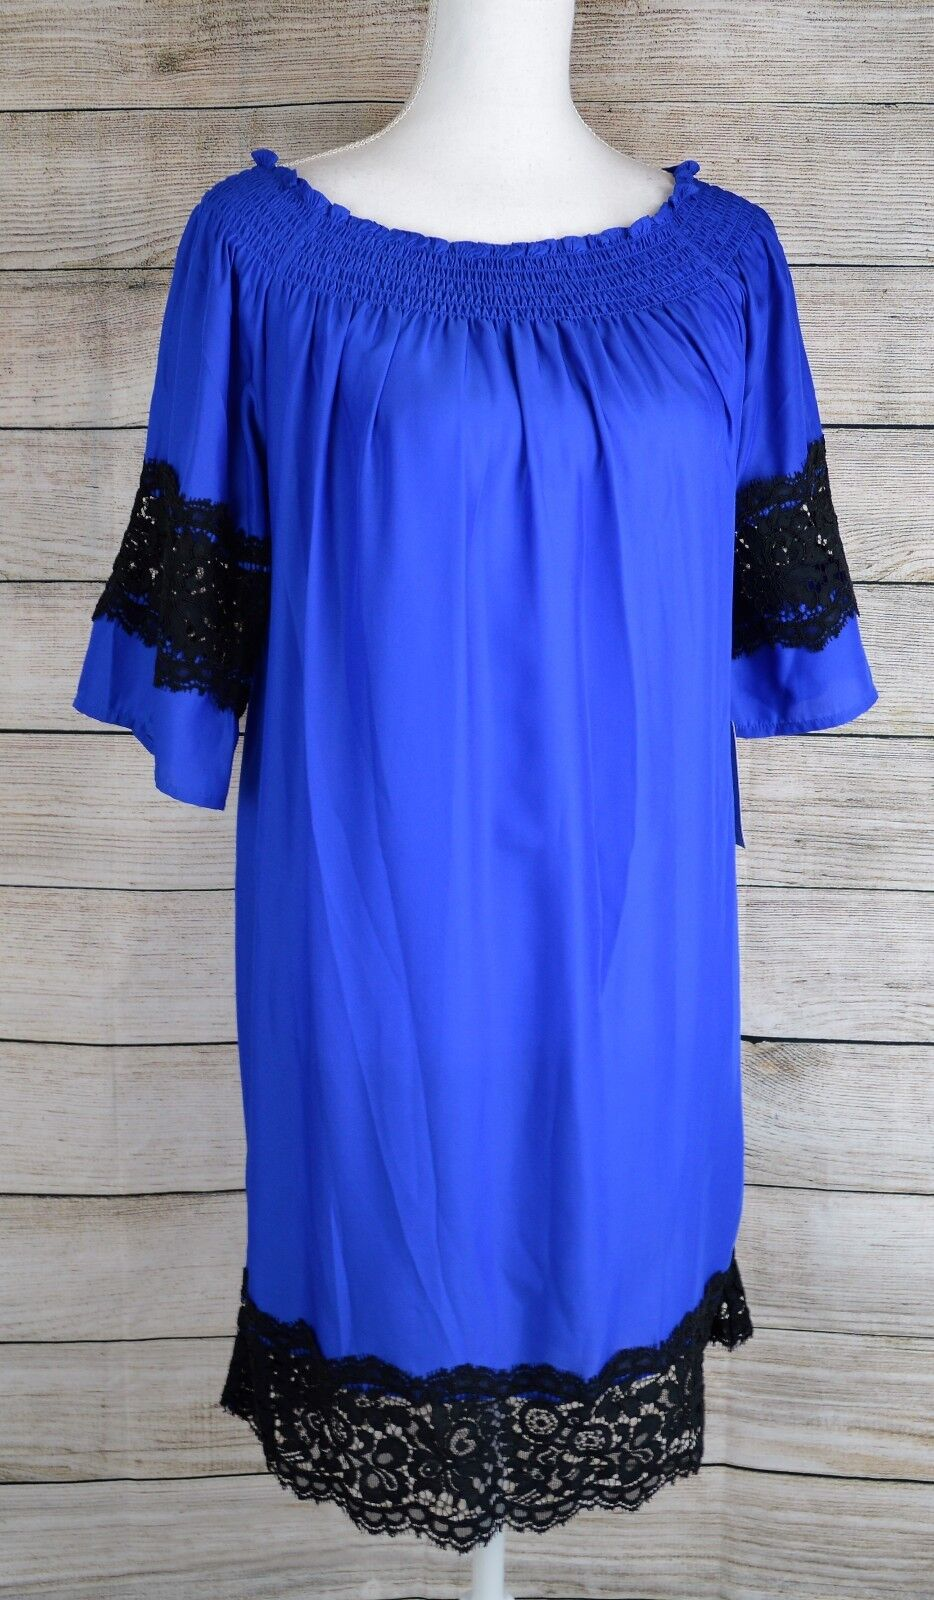 Felicity & Coco Off the Shoulder Shift Dress Lace Trim Elbow Sleeve bluee Small S